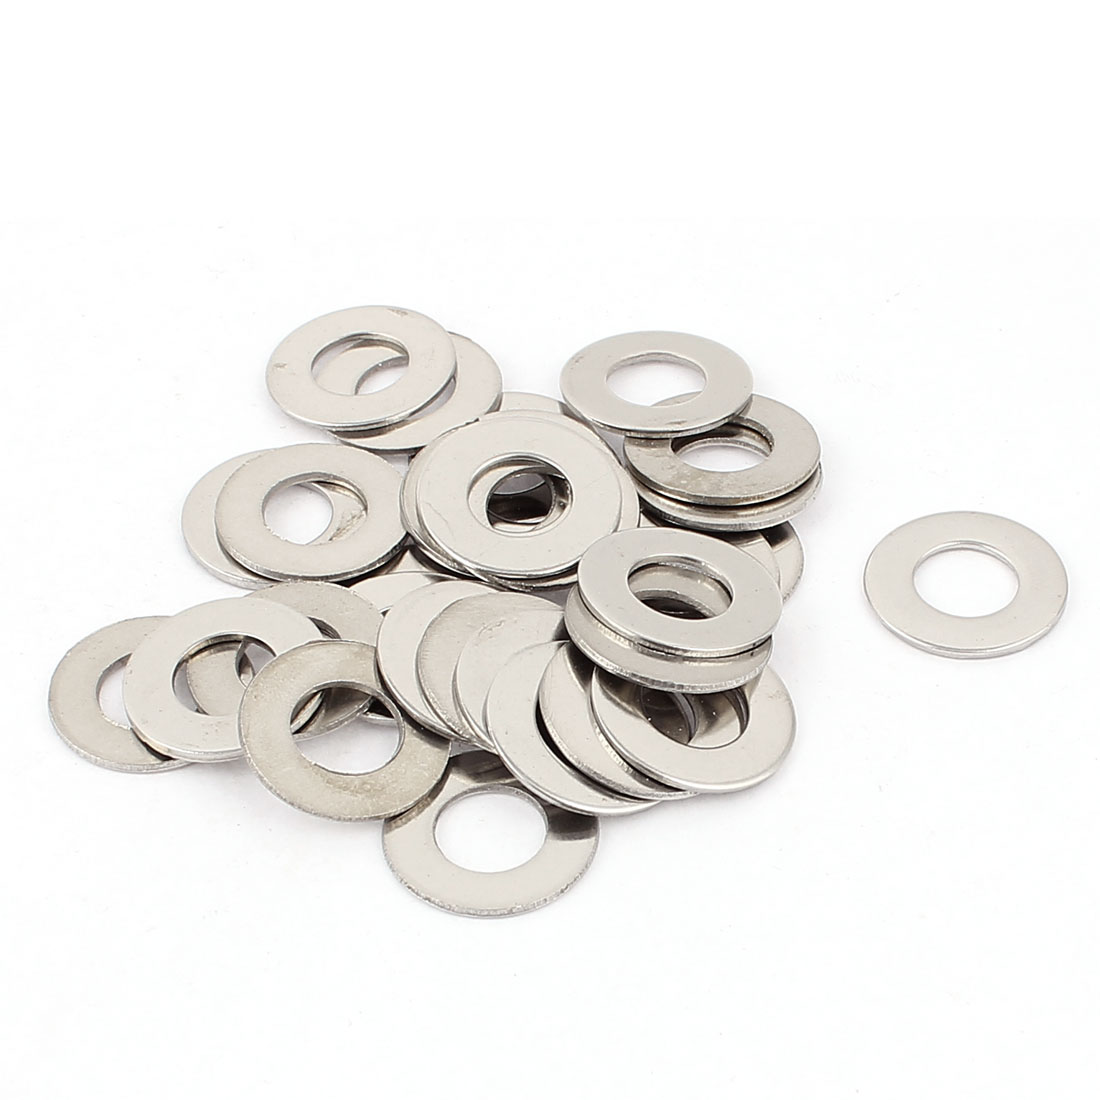 30pcs 304 Stainless Steel M10x20mm Flat Spacer Washers